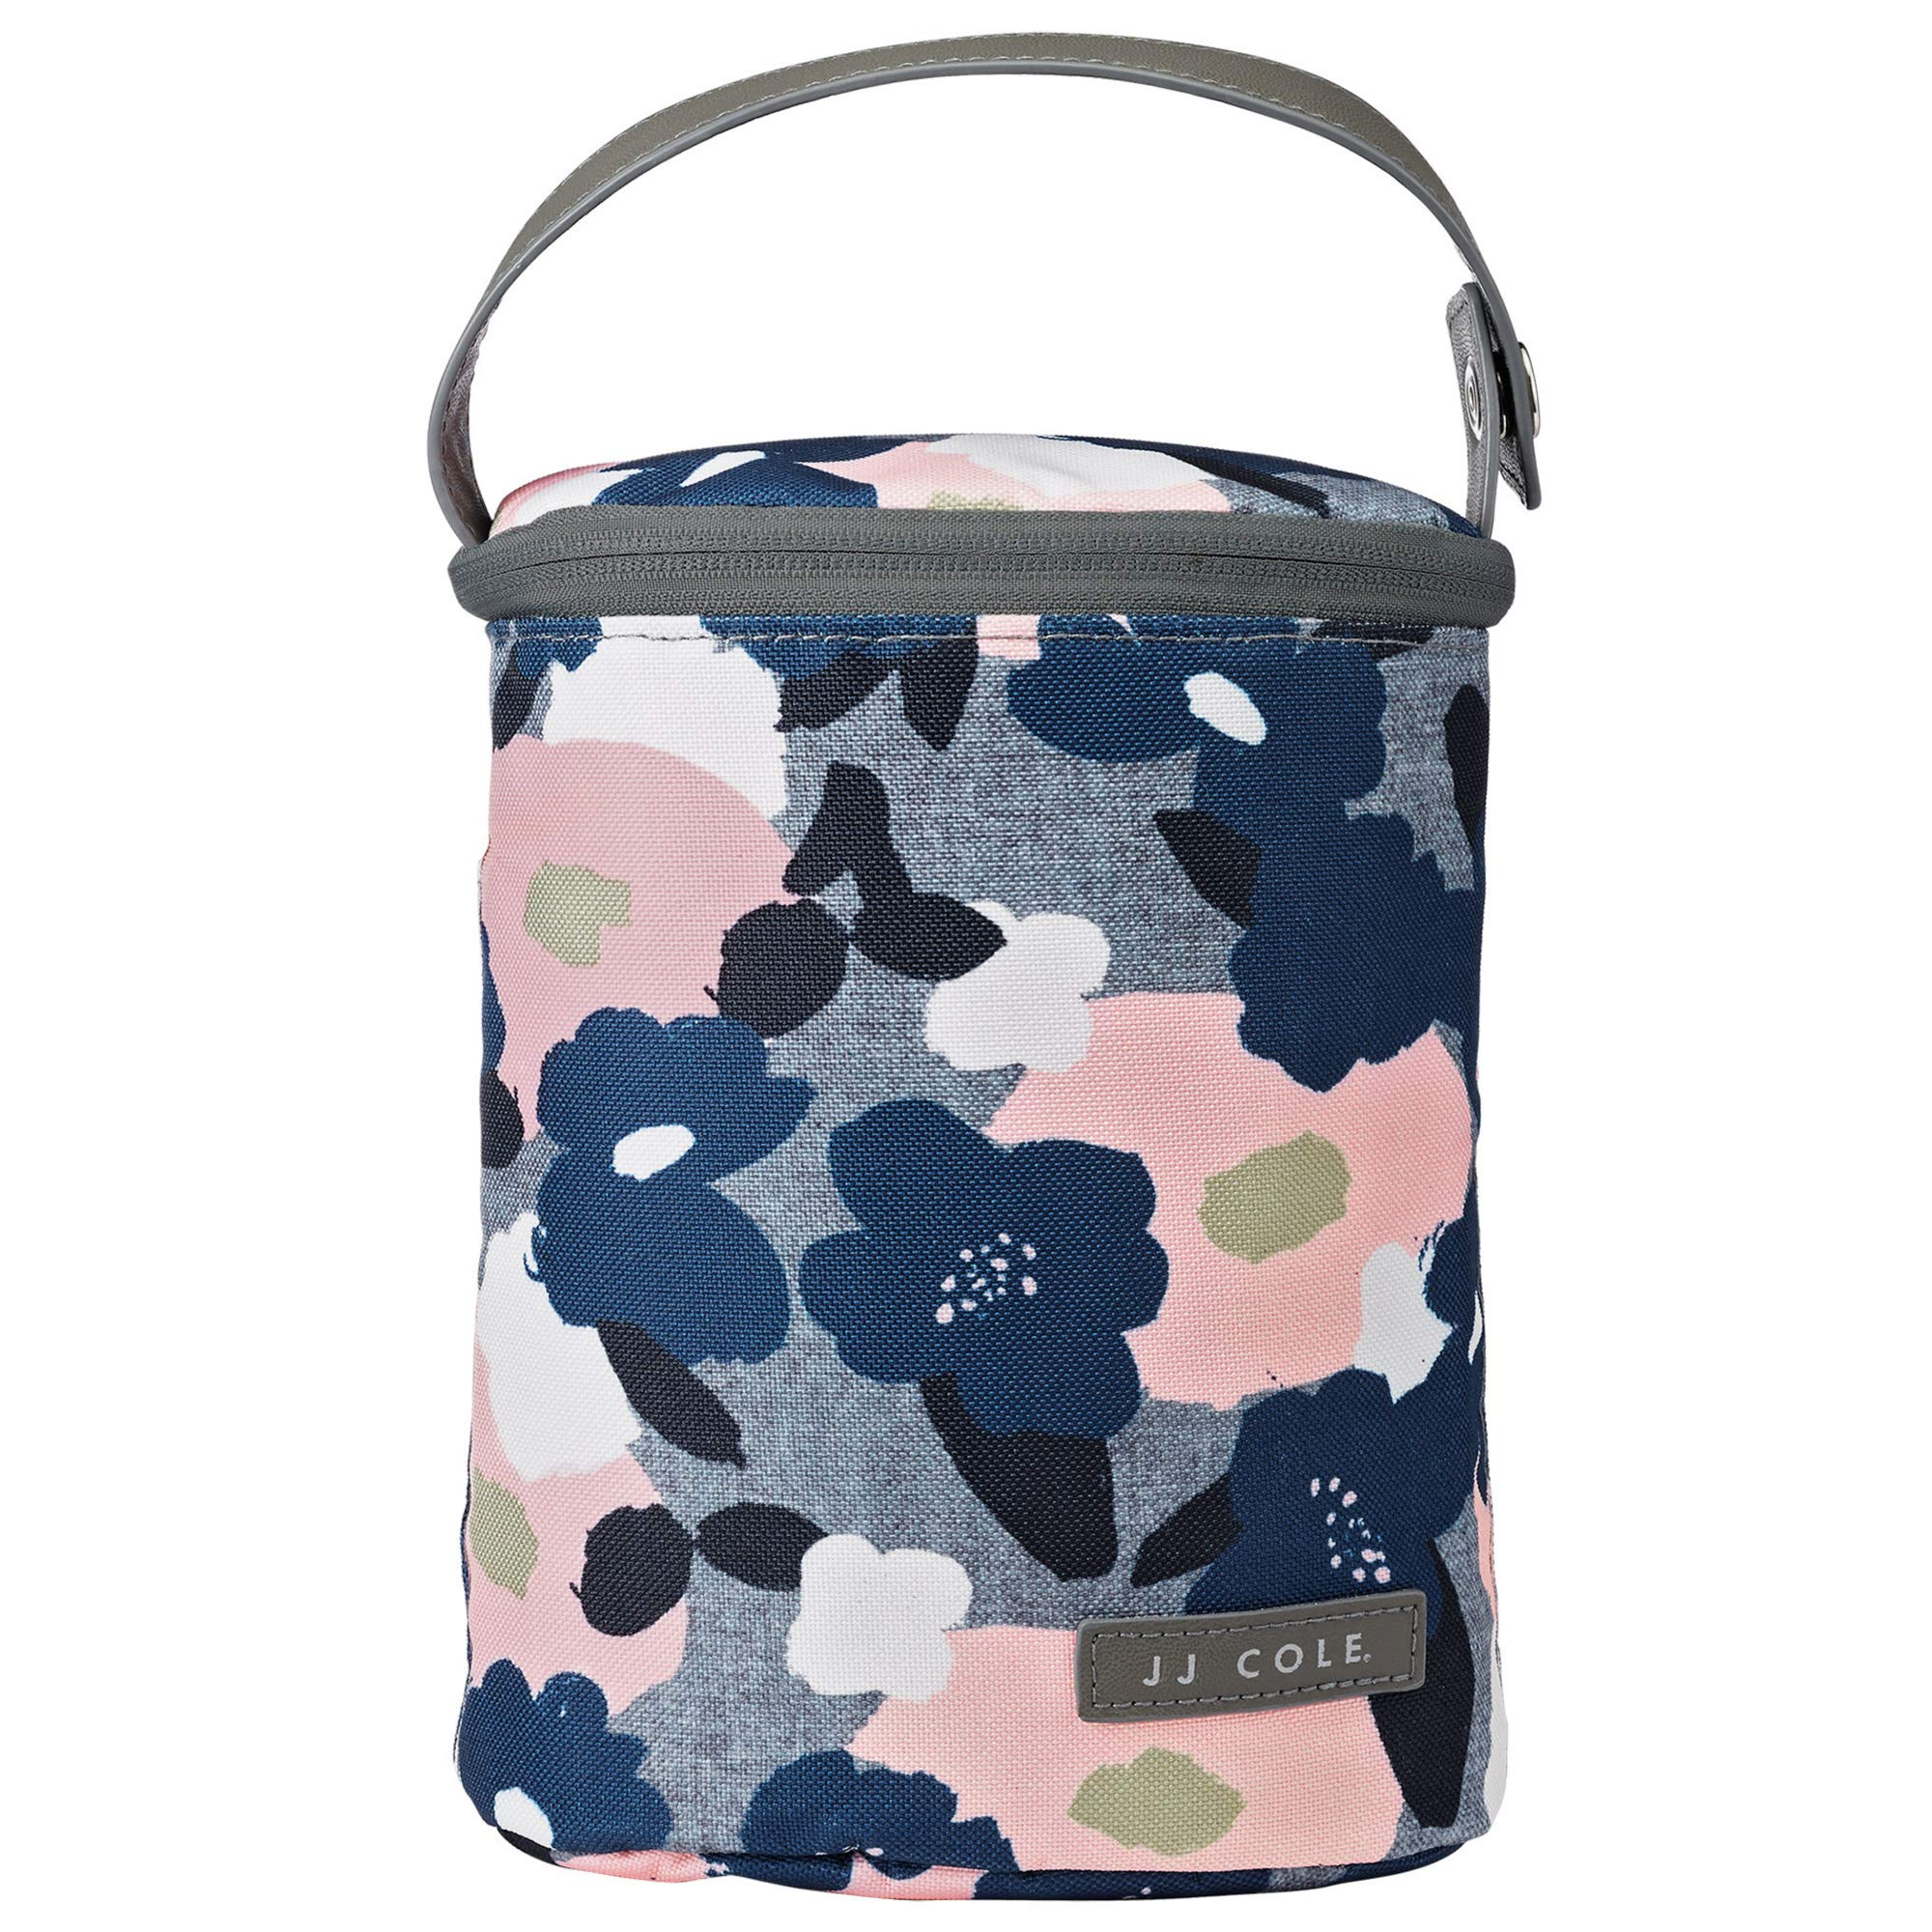 JJ Cole - Bottle Cooler, Insulated Interior for 2 Large Bottles or Sippy Cups, Included Freezer Pack, Exterior Pocket, and Easy Attach Handle, Heather Floral by JJ Cole